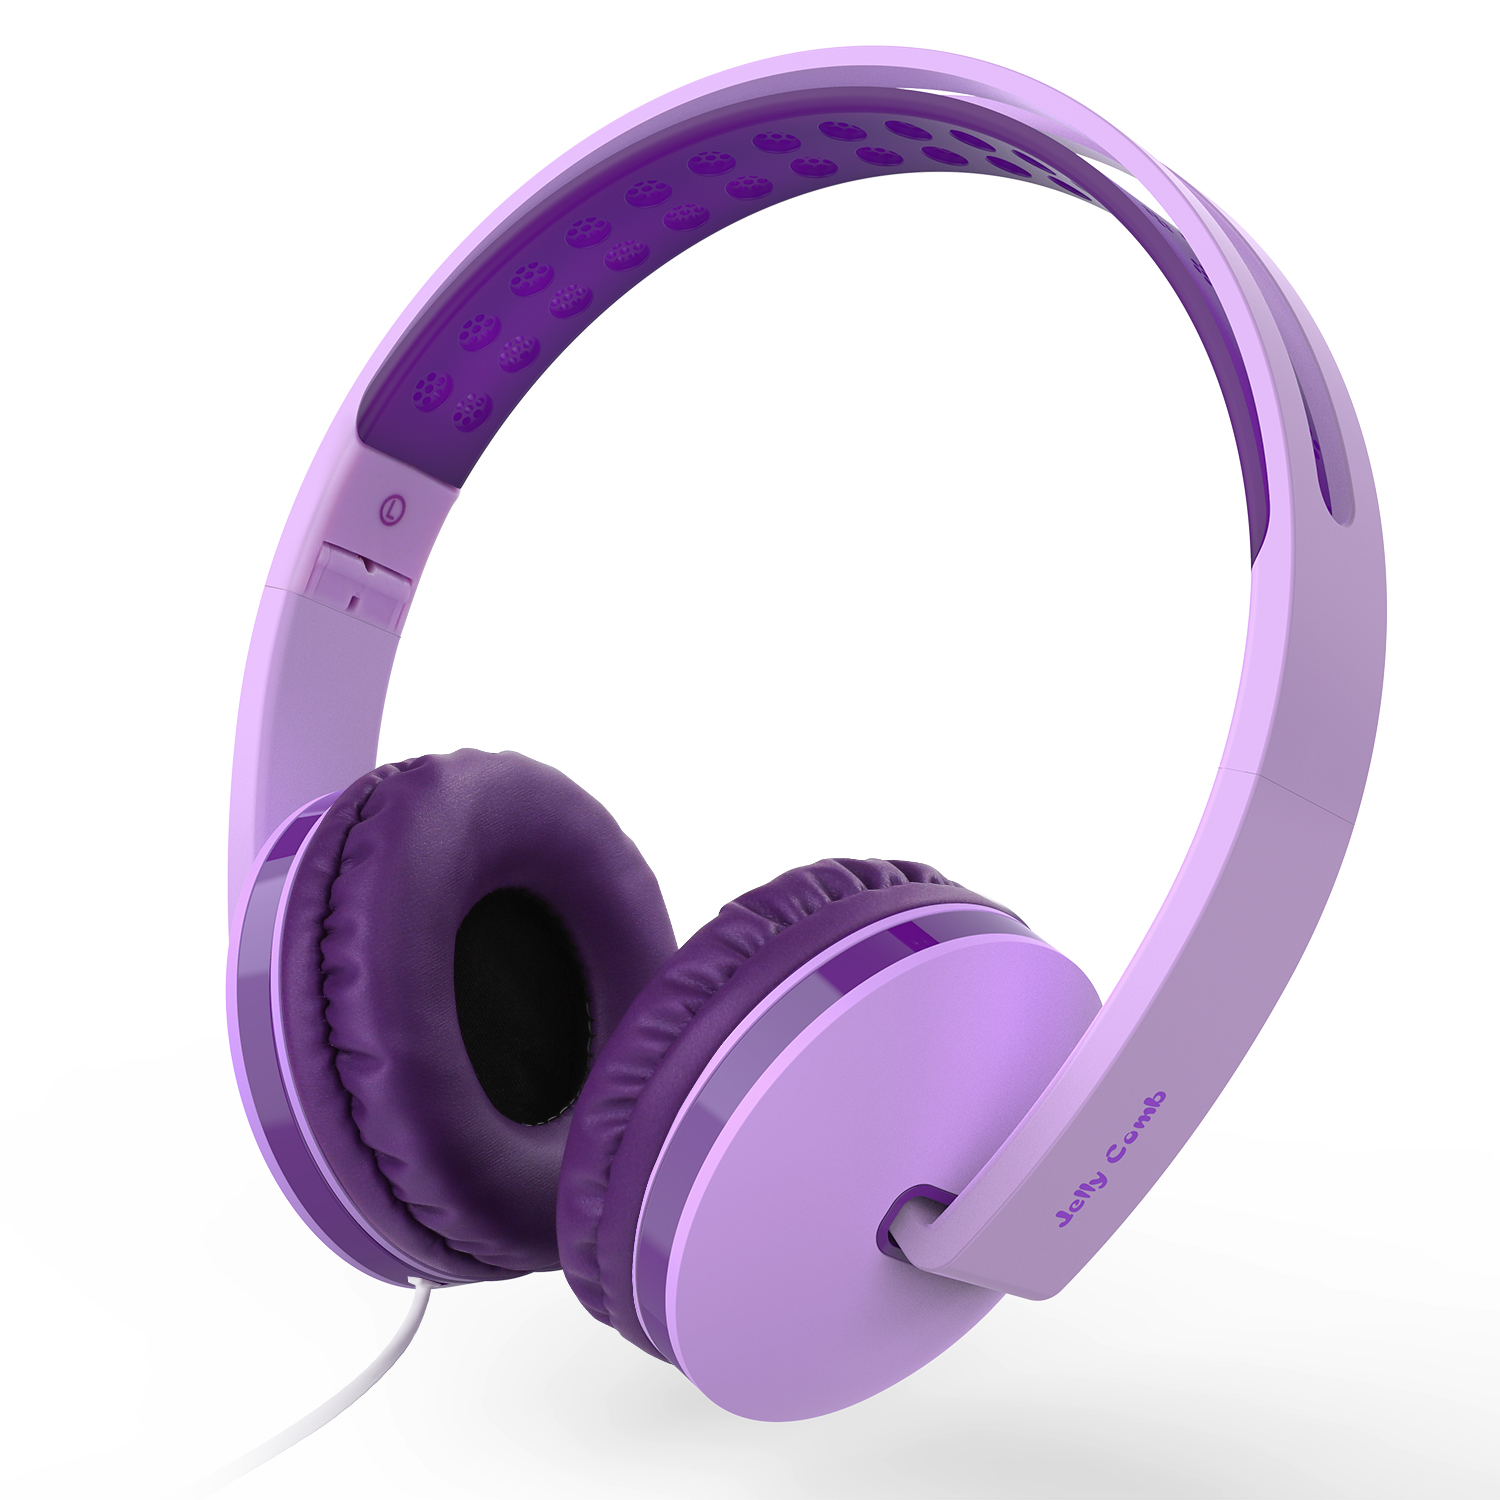 Jelly Comb On Ear Headphones with Mic, Foldable Corded Headphones Wired Headsets with Microphone, Volume Control for Cell Phone, Tablet, PC, Laptop, MP3/4, Video Game (Pink Purple & Deep Purple)